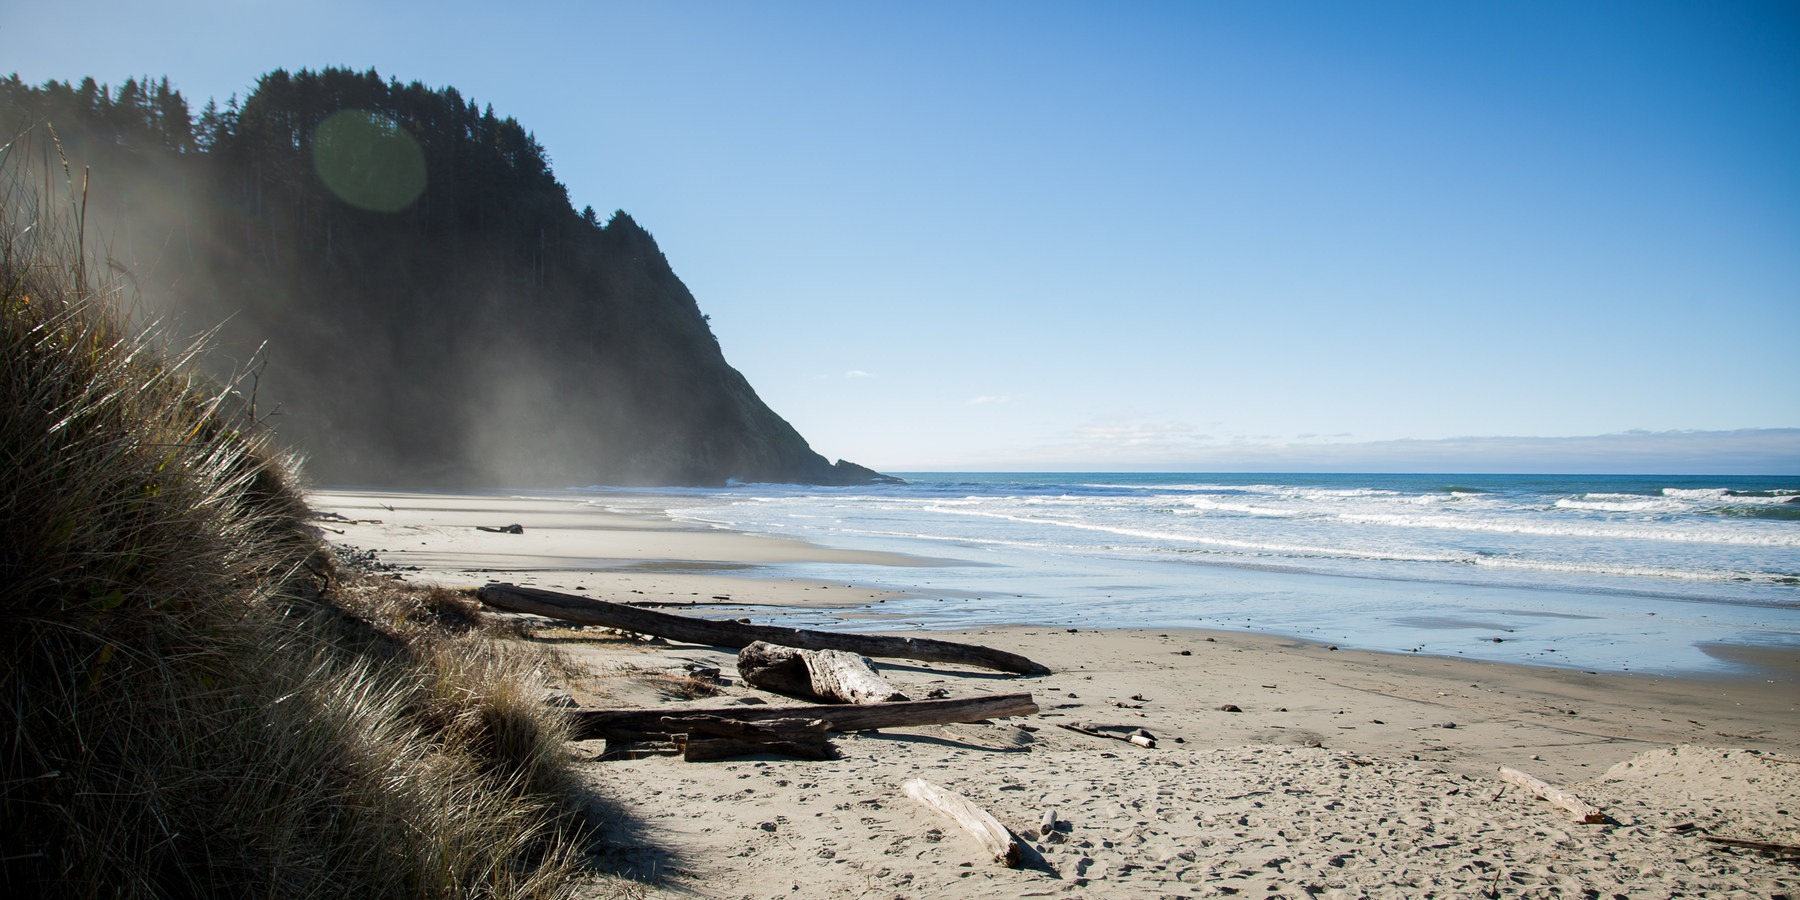 3 Day Itinerary For Florence Oregon The Hobbit Trail Emerges Onto Beach With Southern Views Of Heceta Head